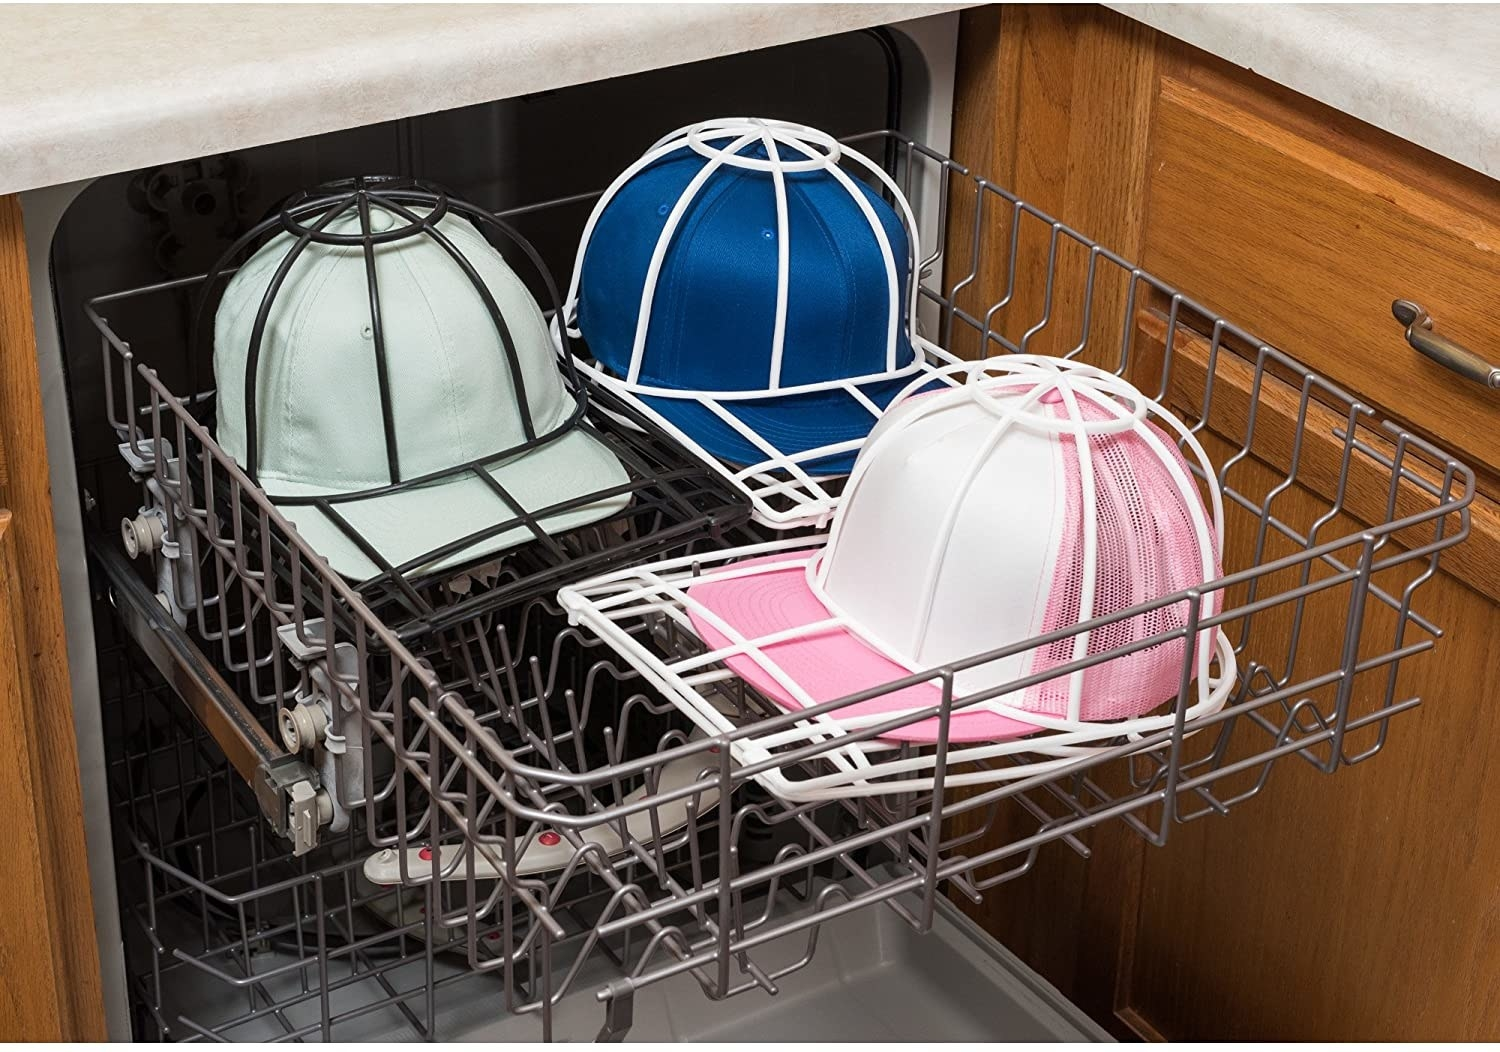 Three baseball caps in protective plastic cages sitting on the top rack of a dishwasher